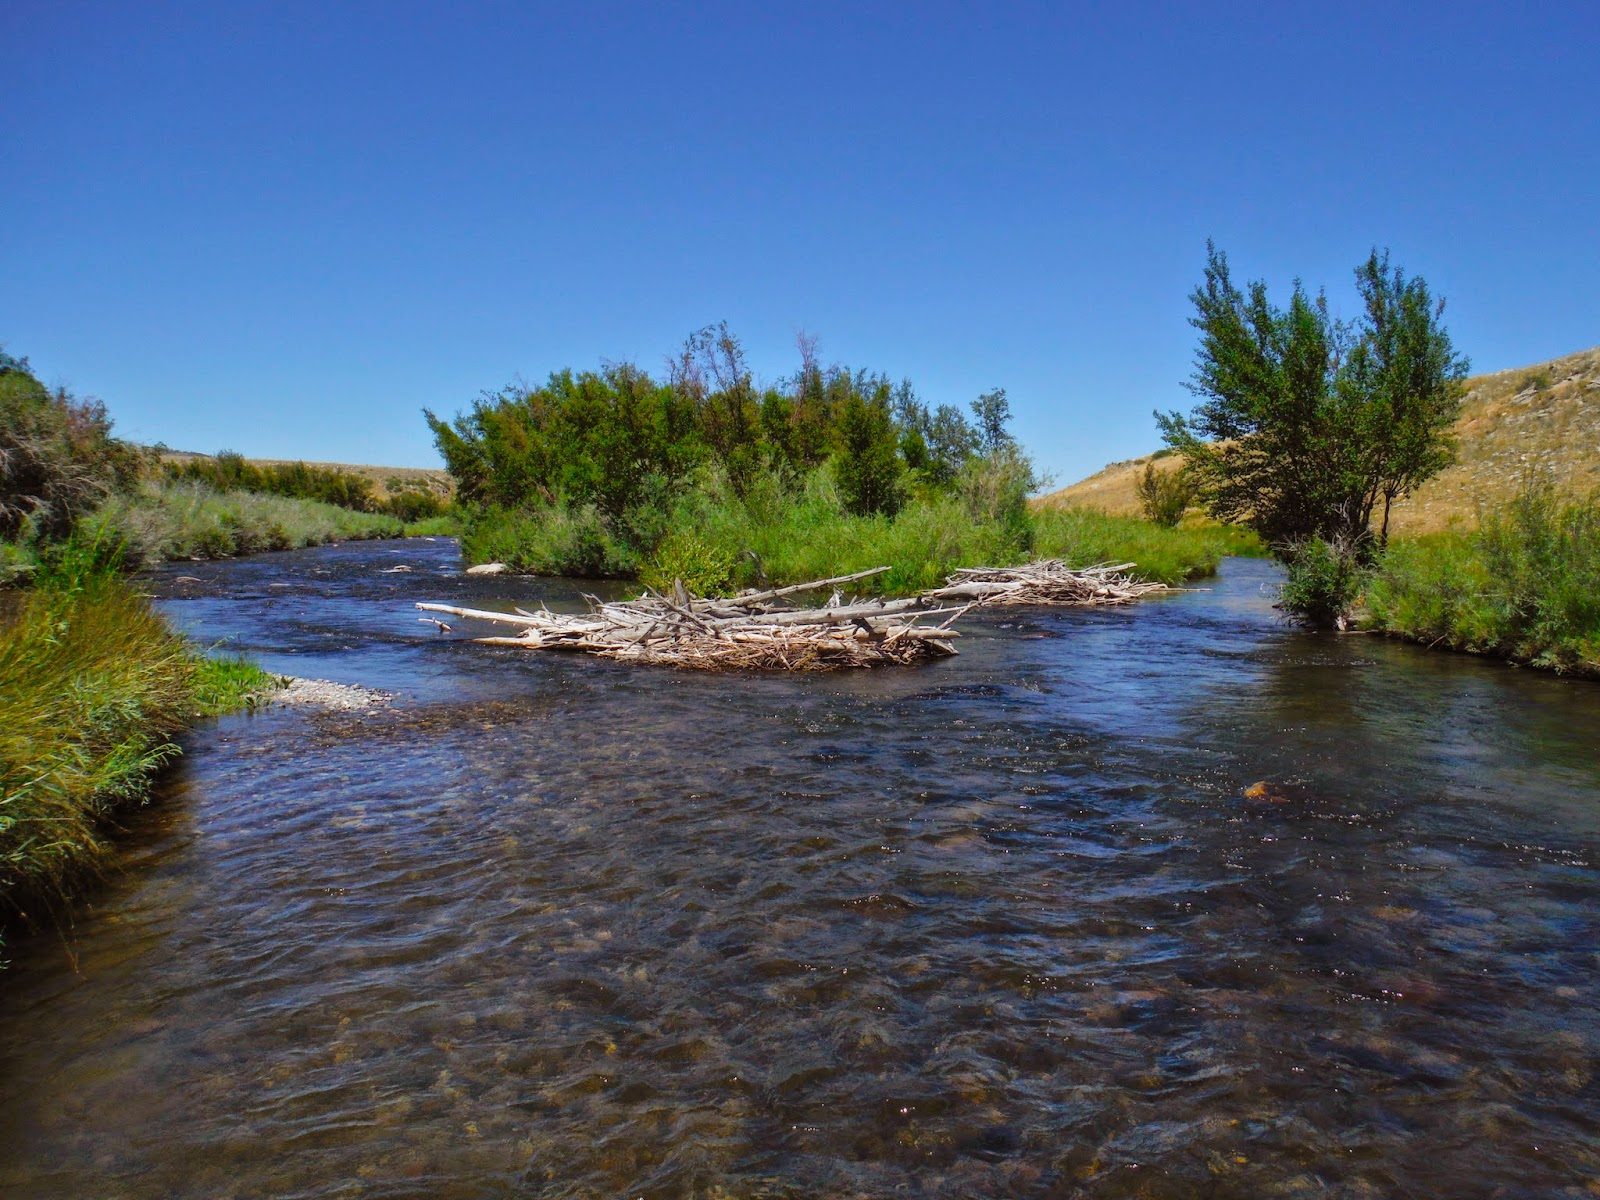 Erik s fly fishing blog anchors away on the madison river for Madison river fly fishing